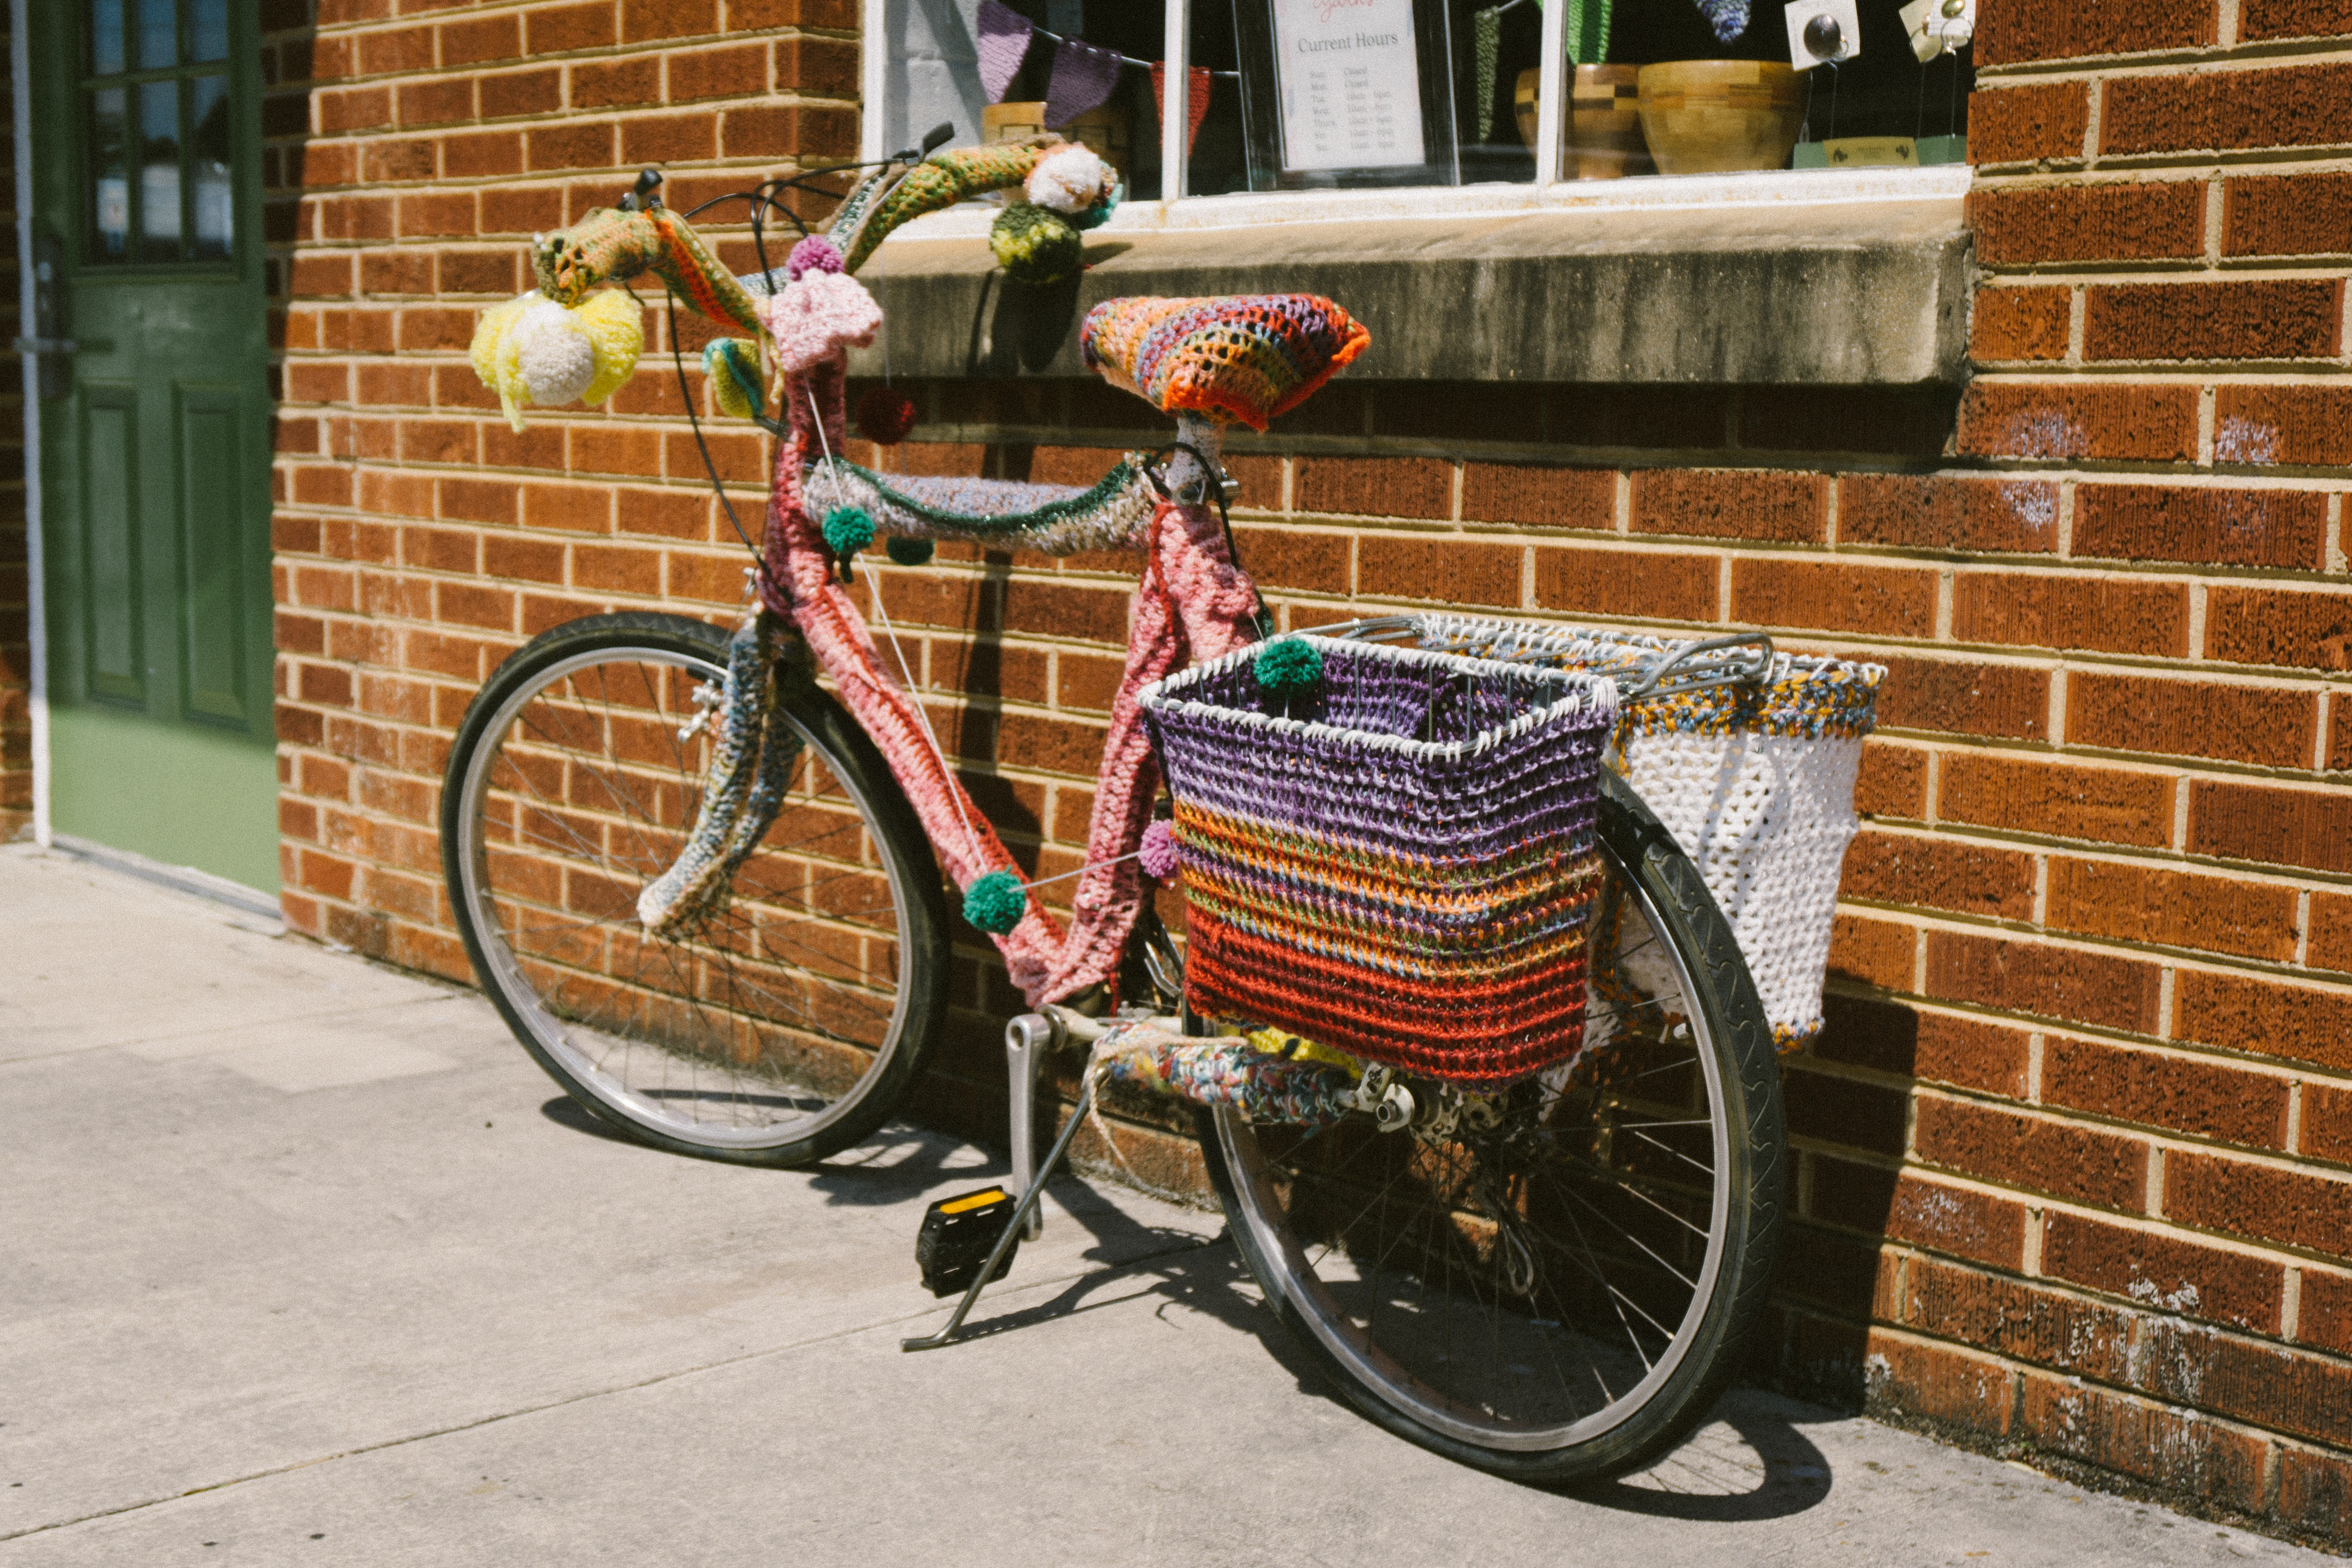 A parked bicycle with colorful crocheted yarn wrapped around its handlebars, seat, and frame